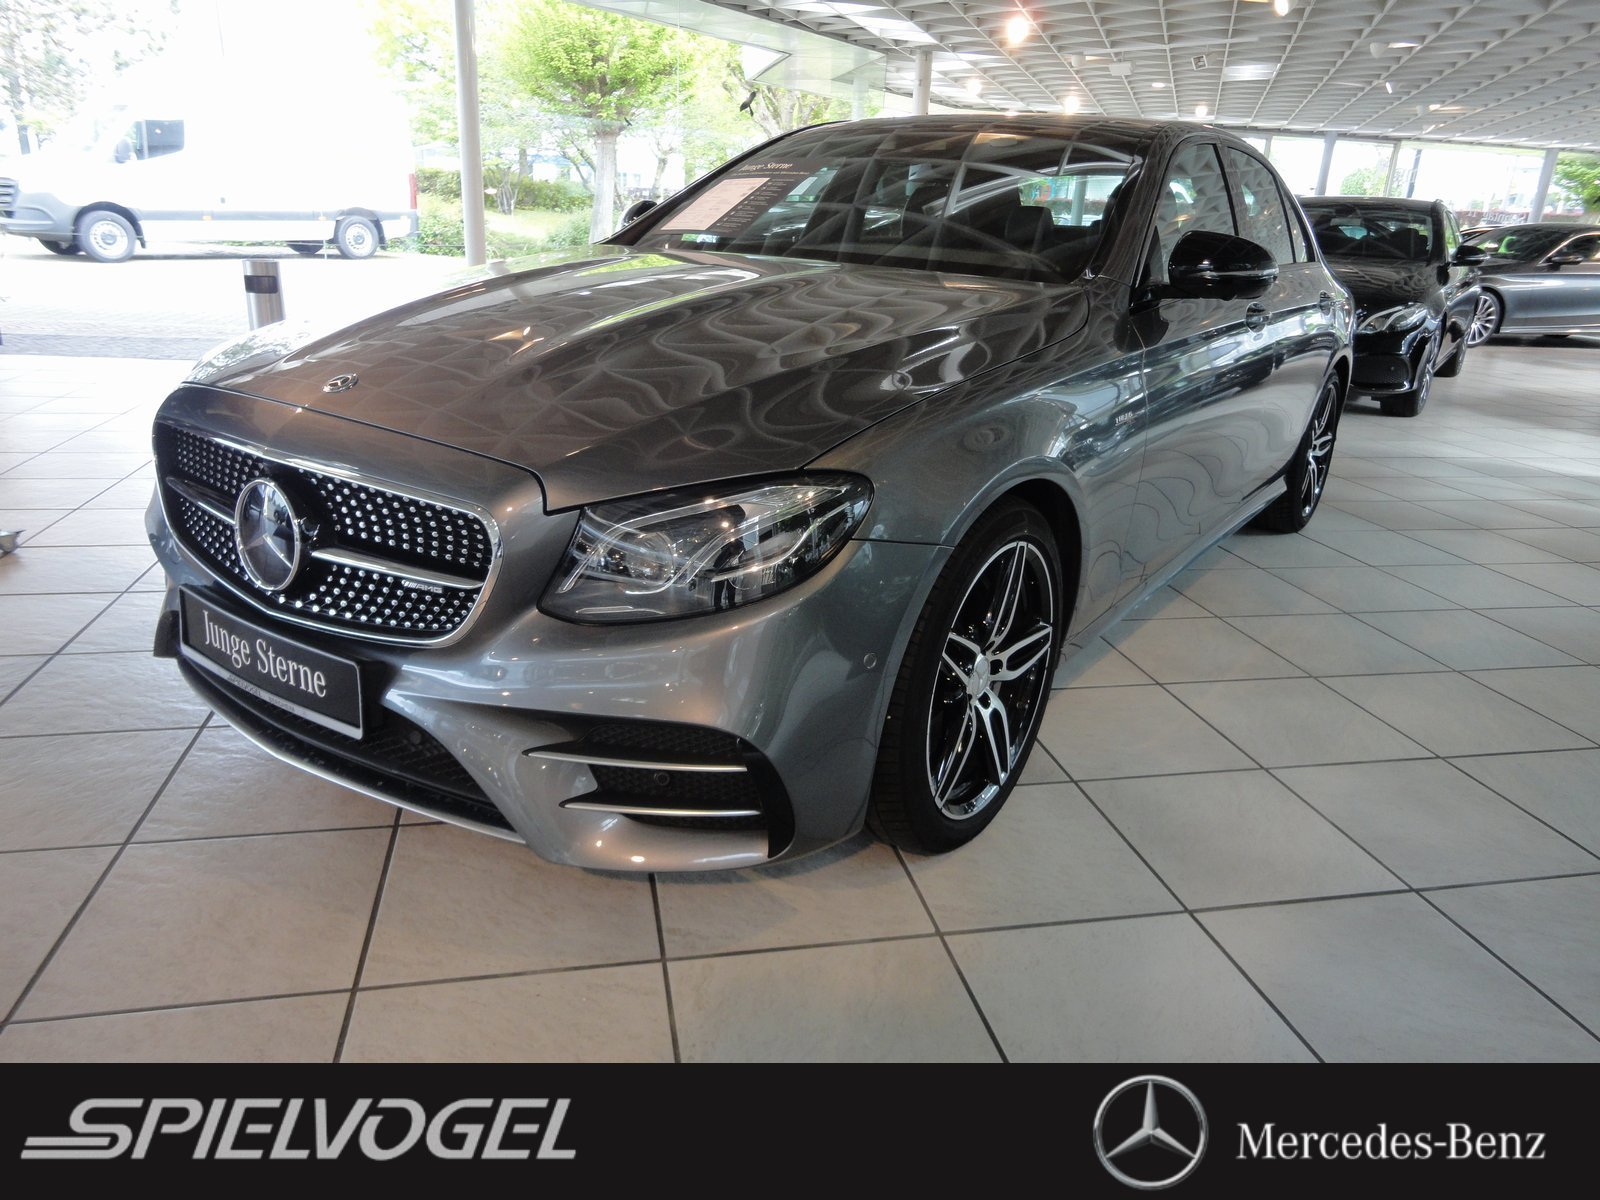 Mercedes-Benz AMG E 53 4M+ PANORAMA MBEAM 360° WIDE ASSISTENZ+, Jahr 2019, Benzin